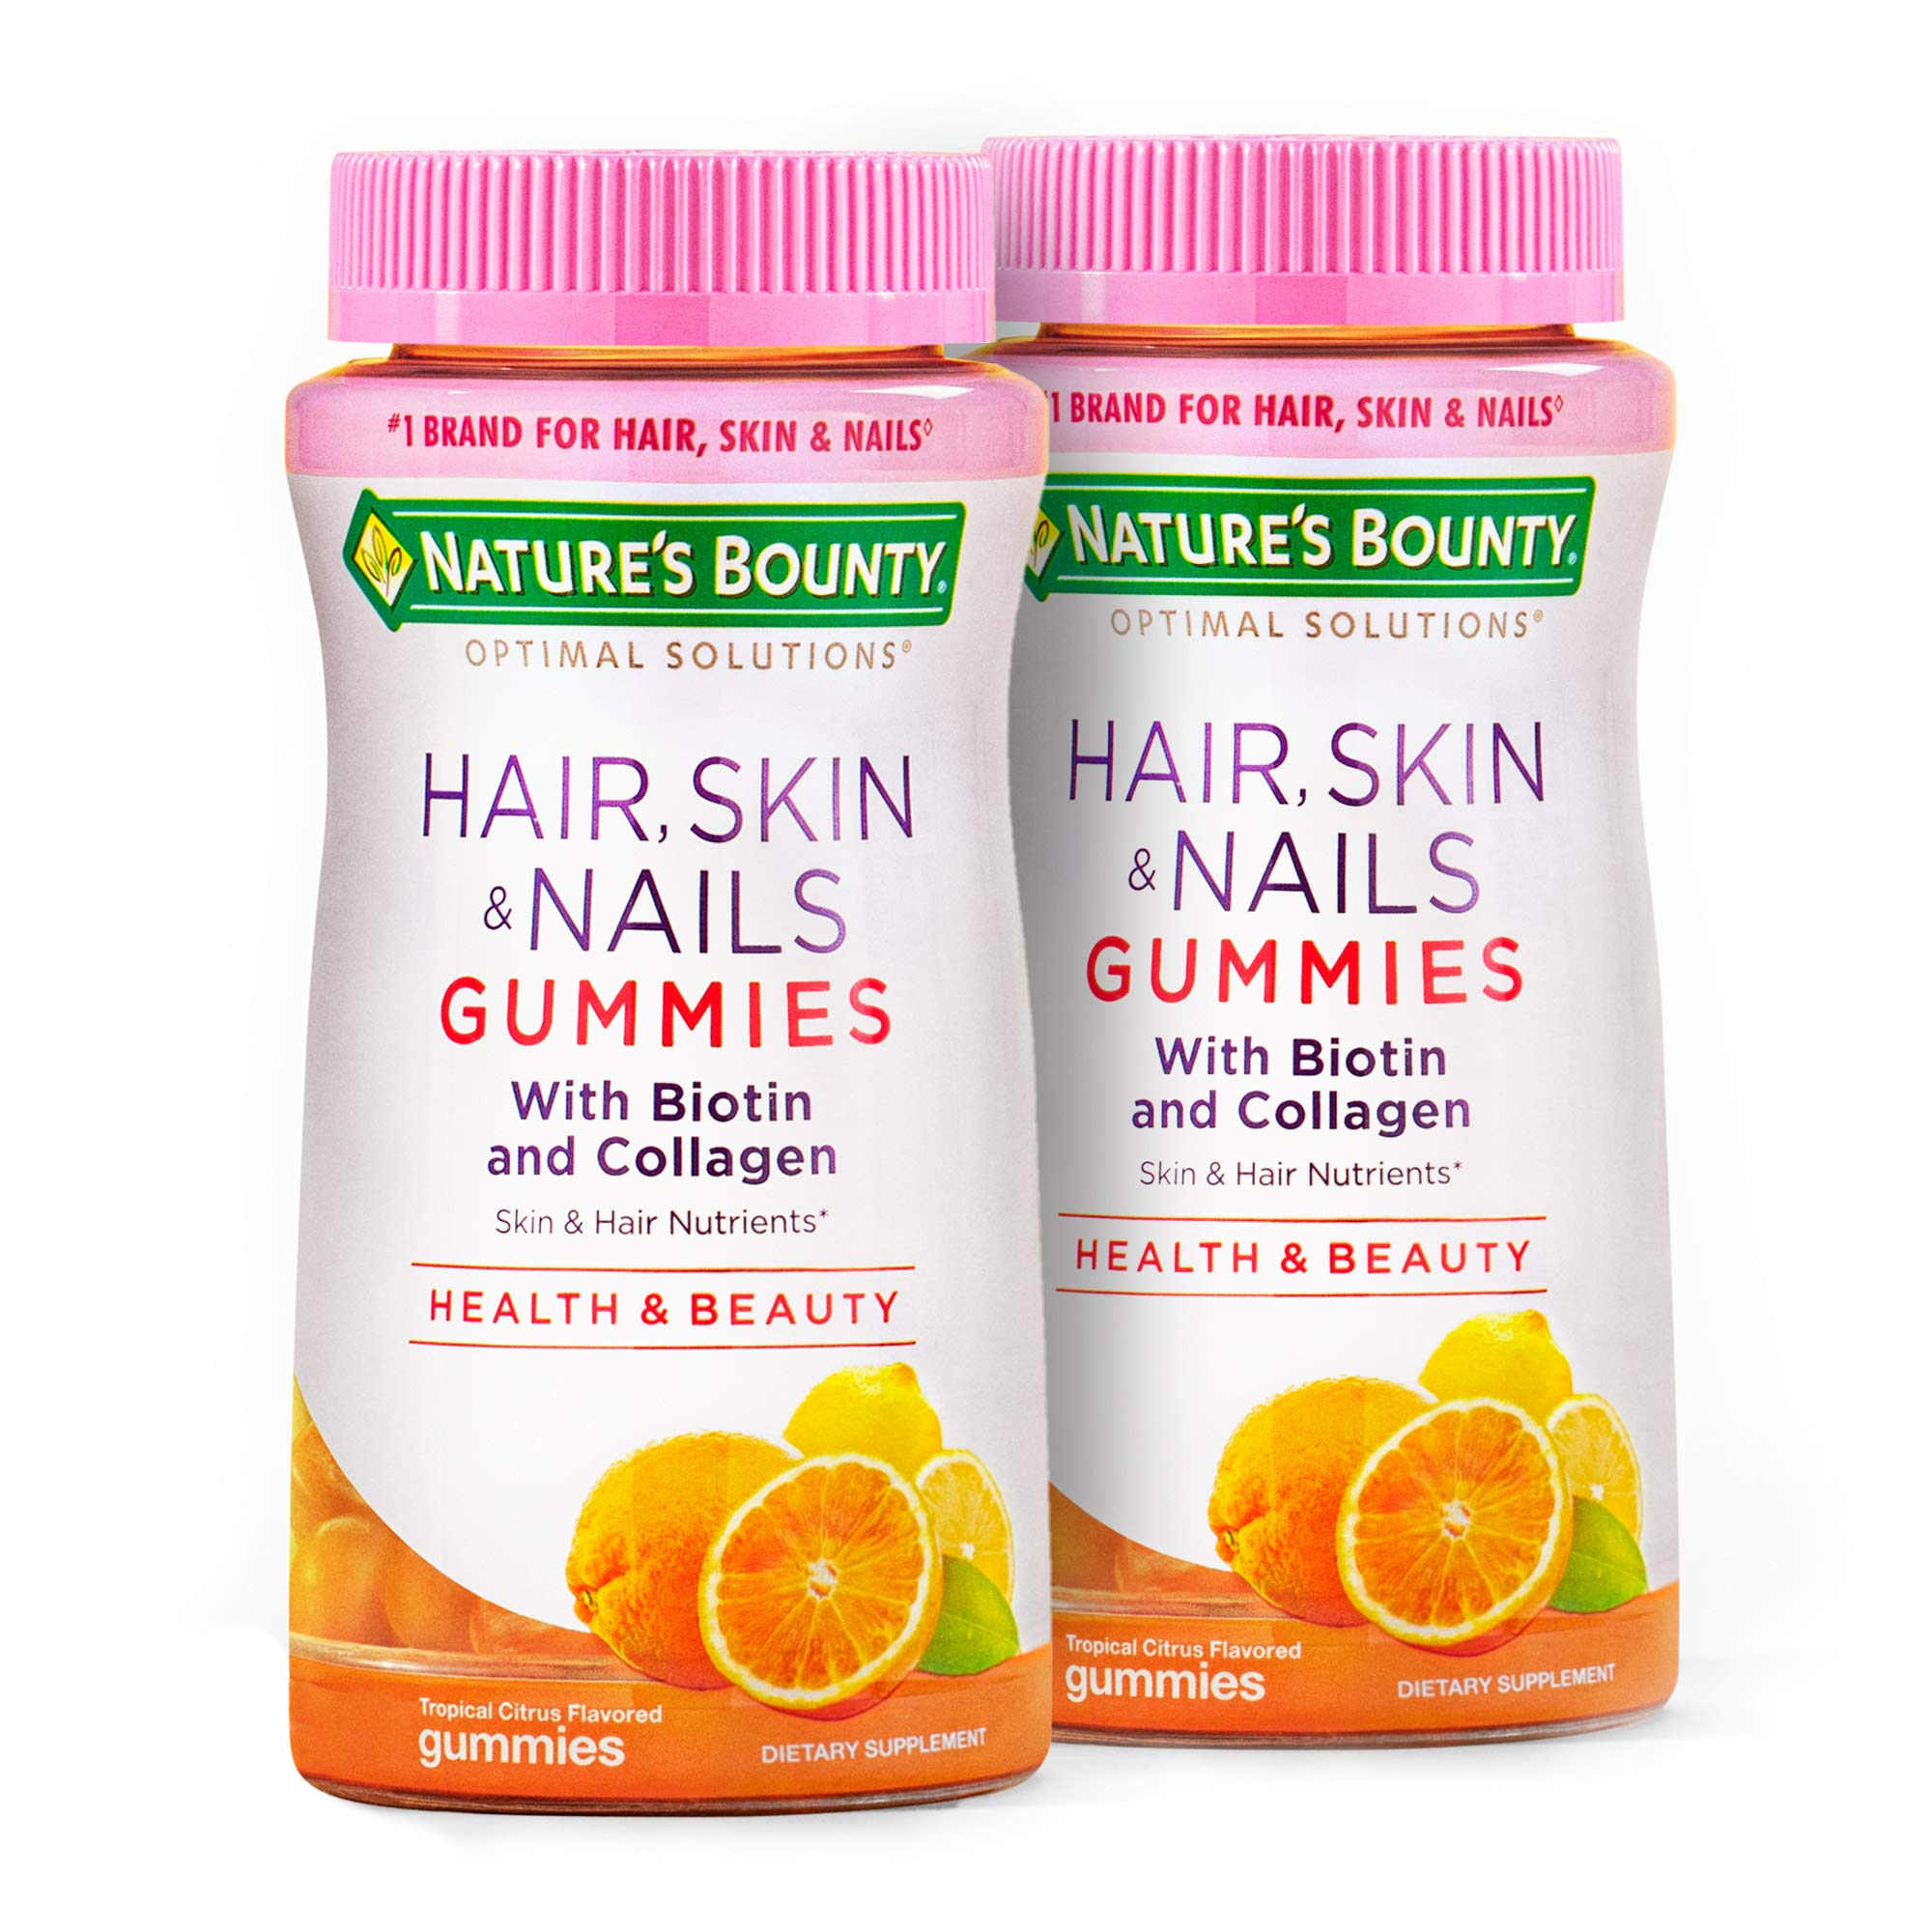 Hair Skin and Nails Vitamins with Biotin & Collagen by Nature's Bounty Optimal Solutions, w/Vitamin C for Immune Support, Hair, Skin and Nails Gummies - Orange Citrus Flavored, 80 Gummies (2-Pack)